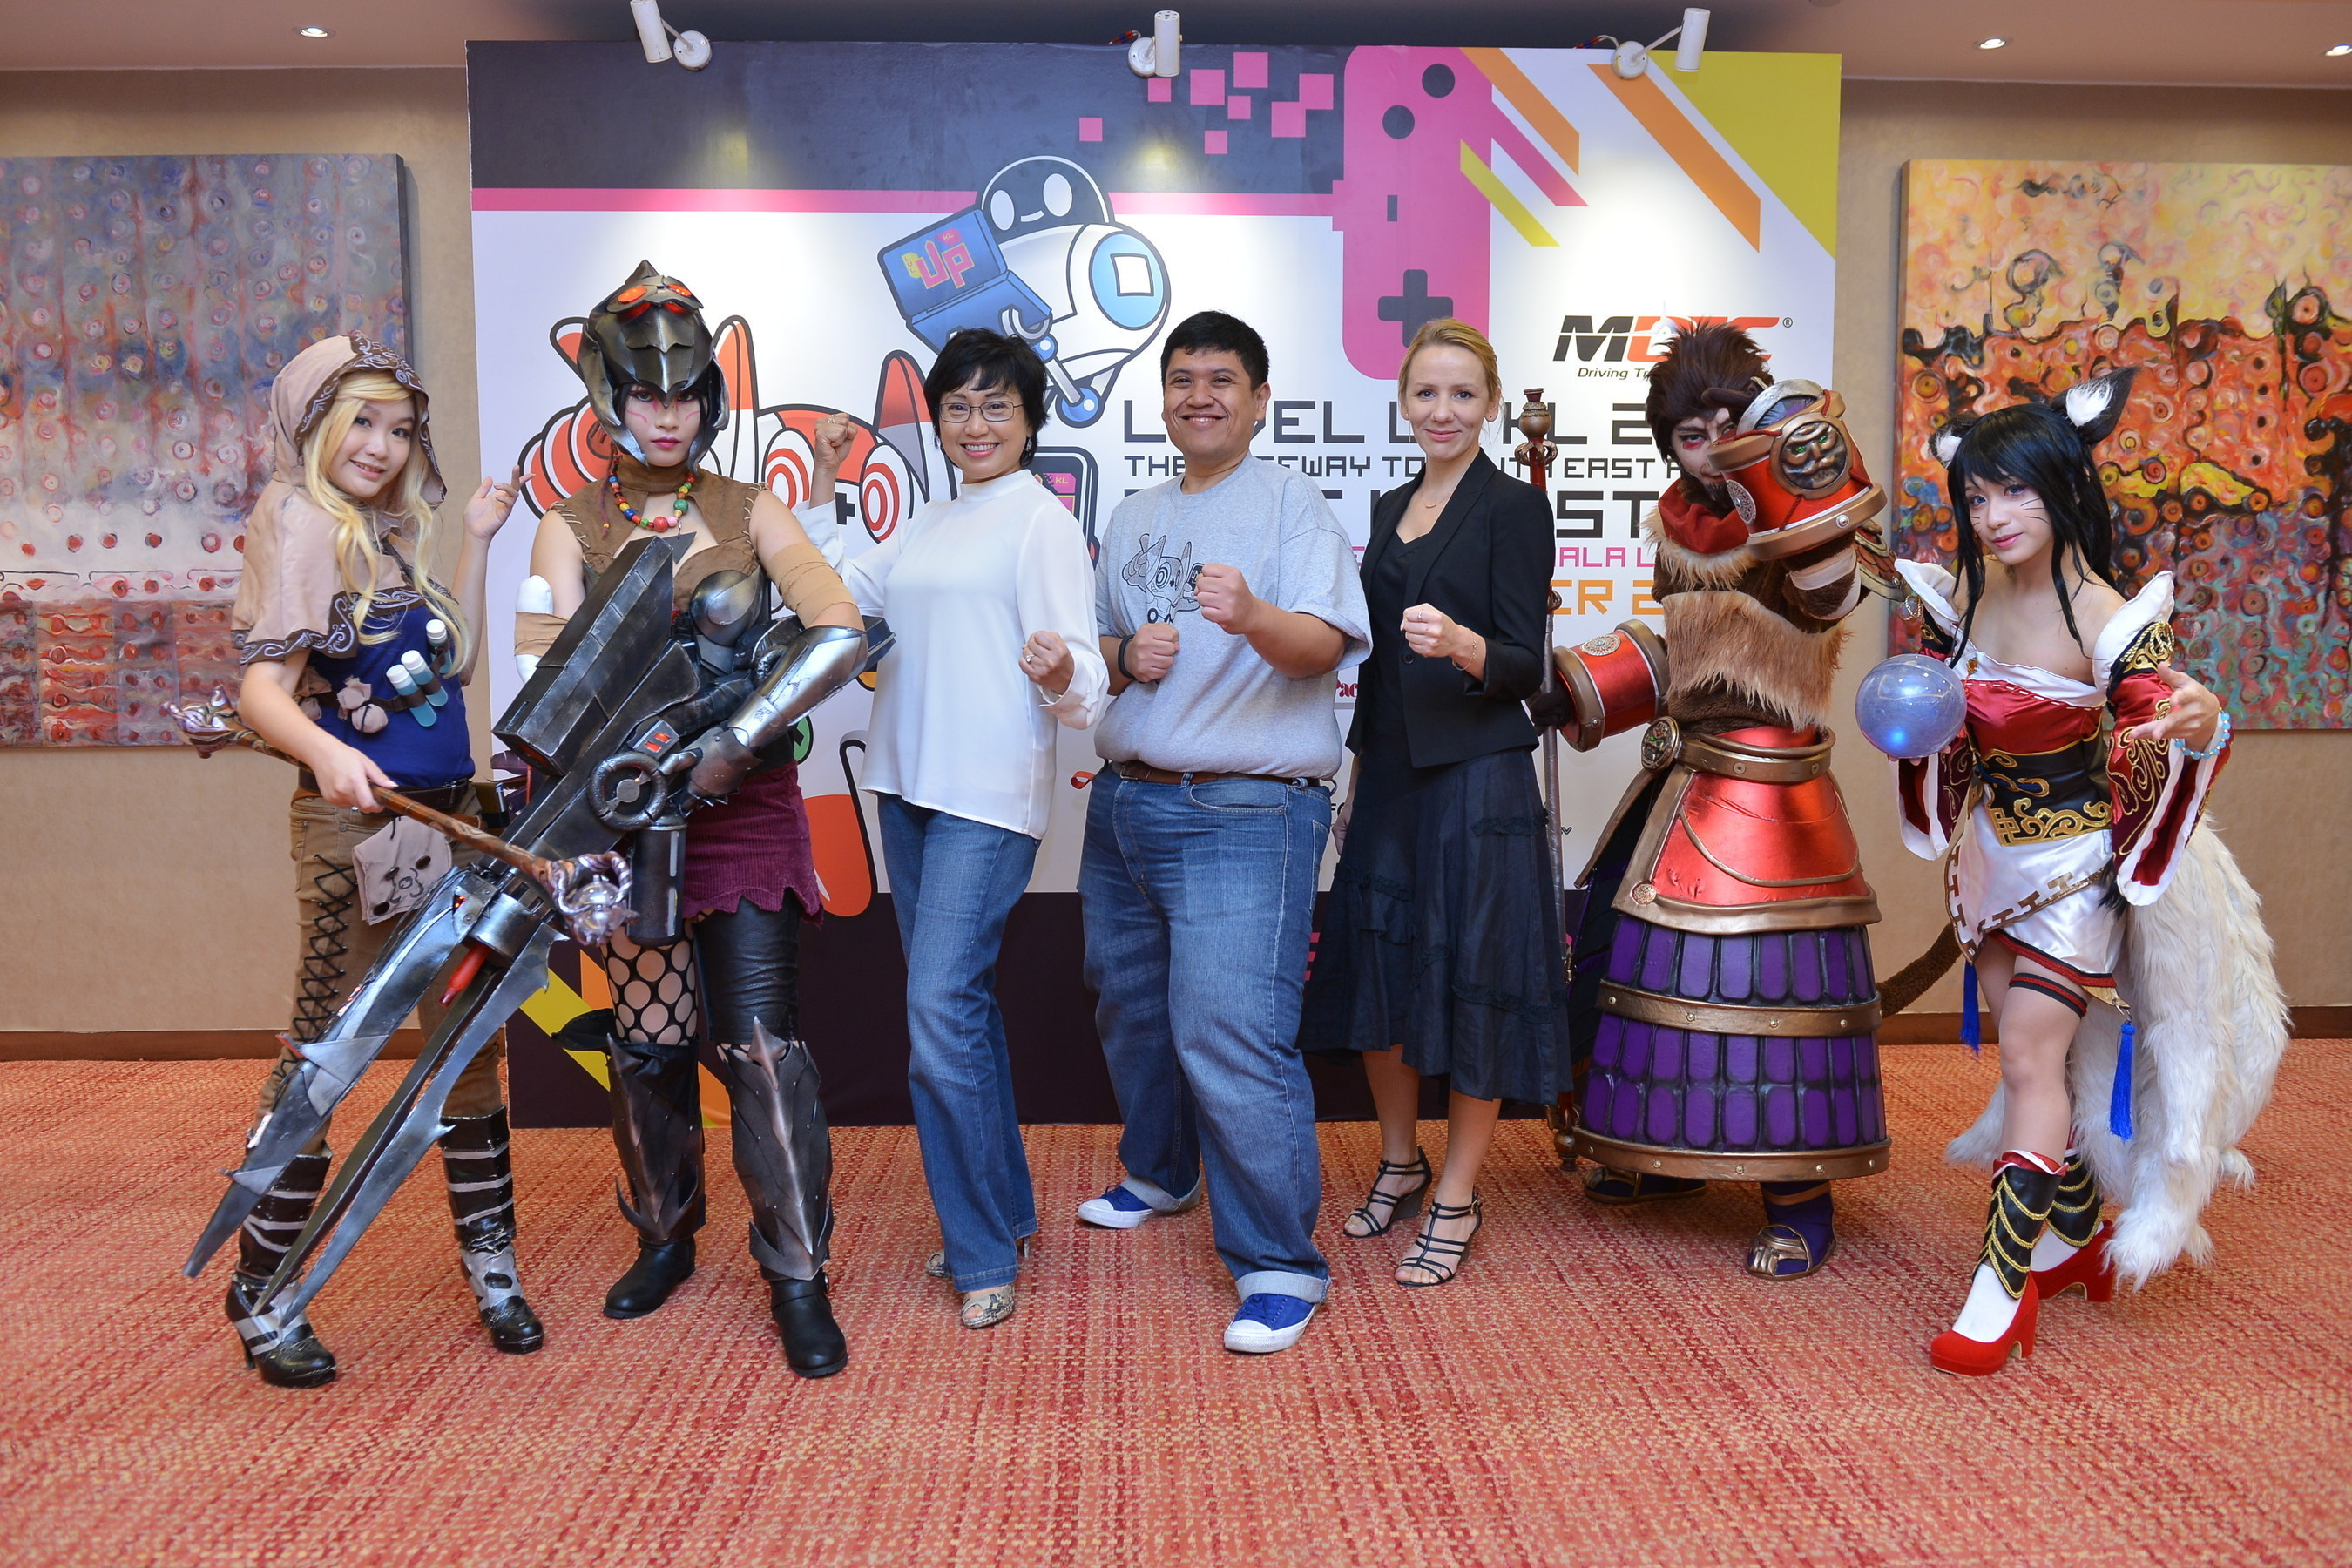 Group photo of cosplayers with MDeC CEO Dato' Yasmin Mahmood (third from left), MDeC's Director of Creative ...